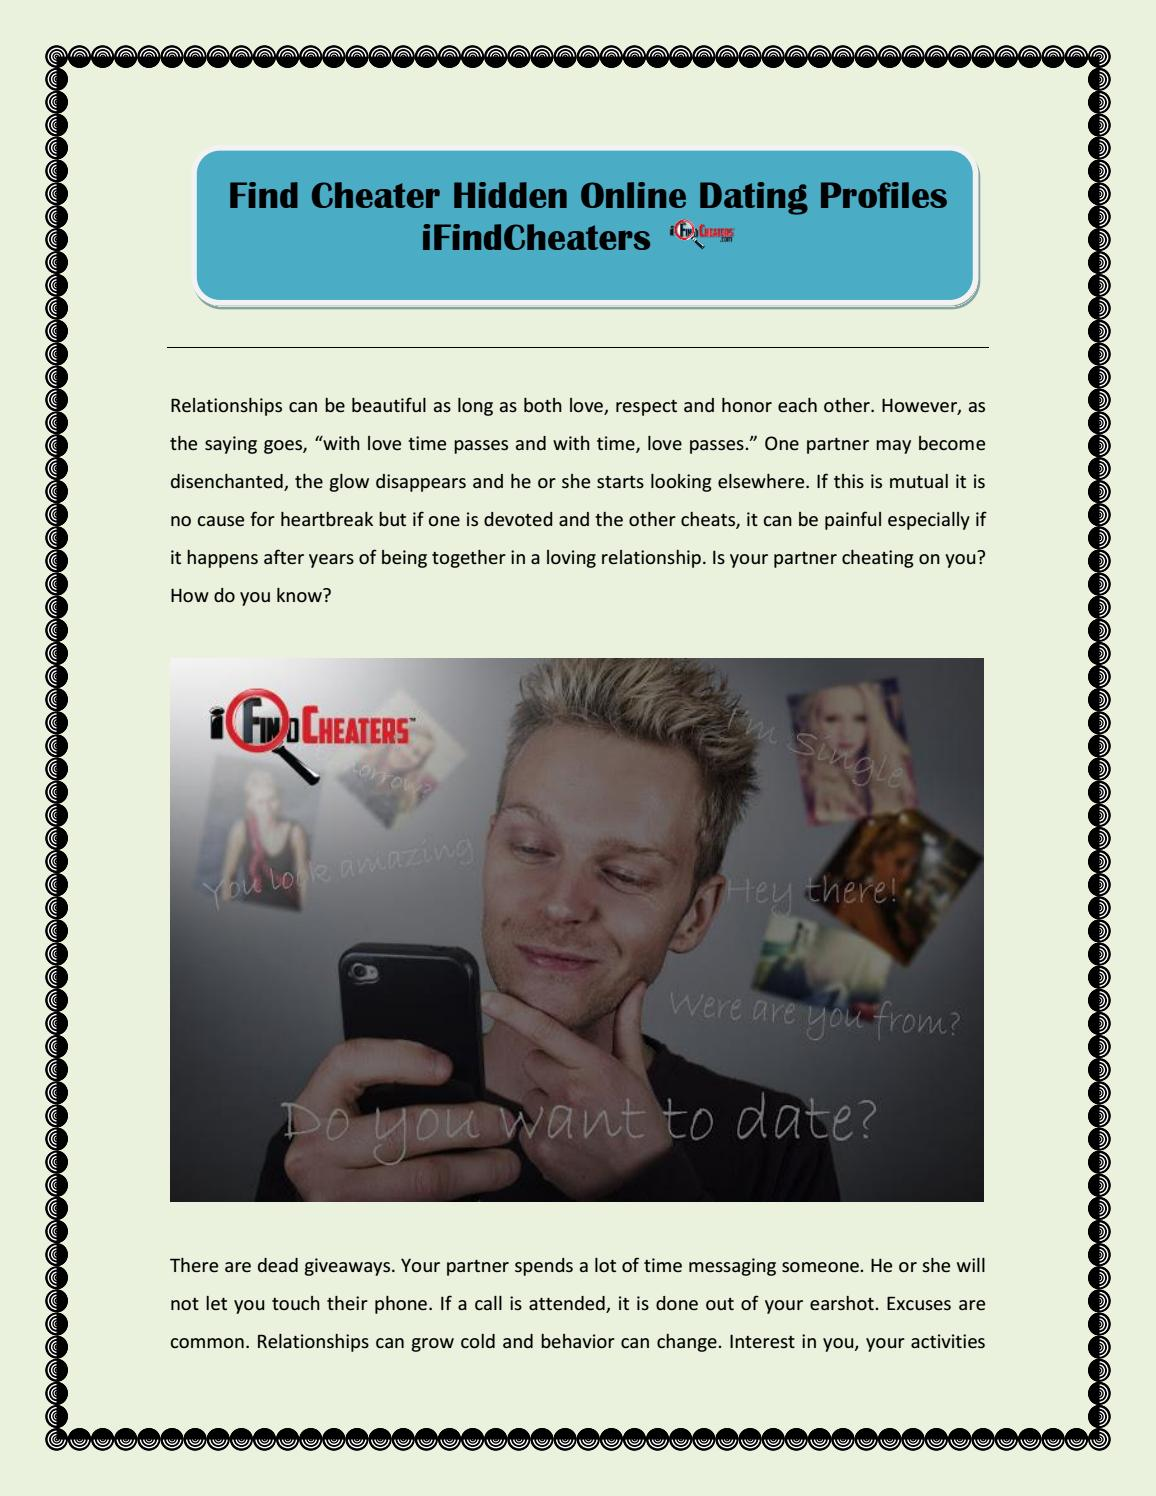 Find Cheater Hidden Online Dating Profiles - iFindCheaters